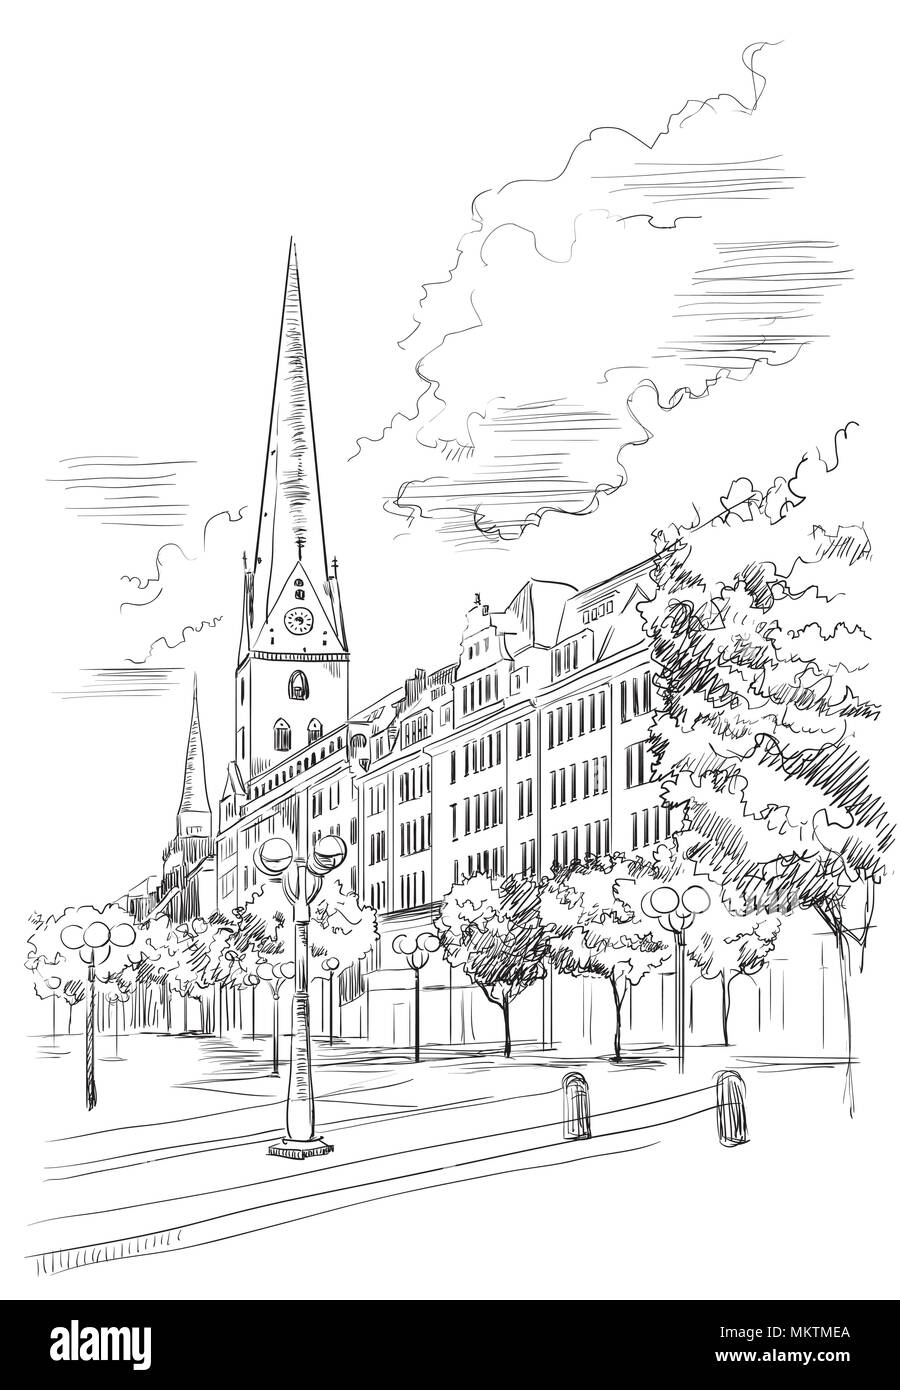 View of hauptkirche st peters church in hamburg germany landmark of hamburg vector hand drawing illustration in black color isolated on white bac